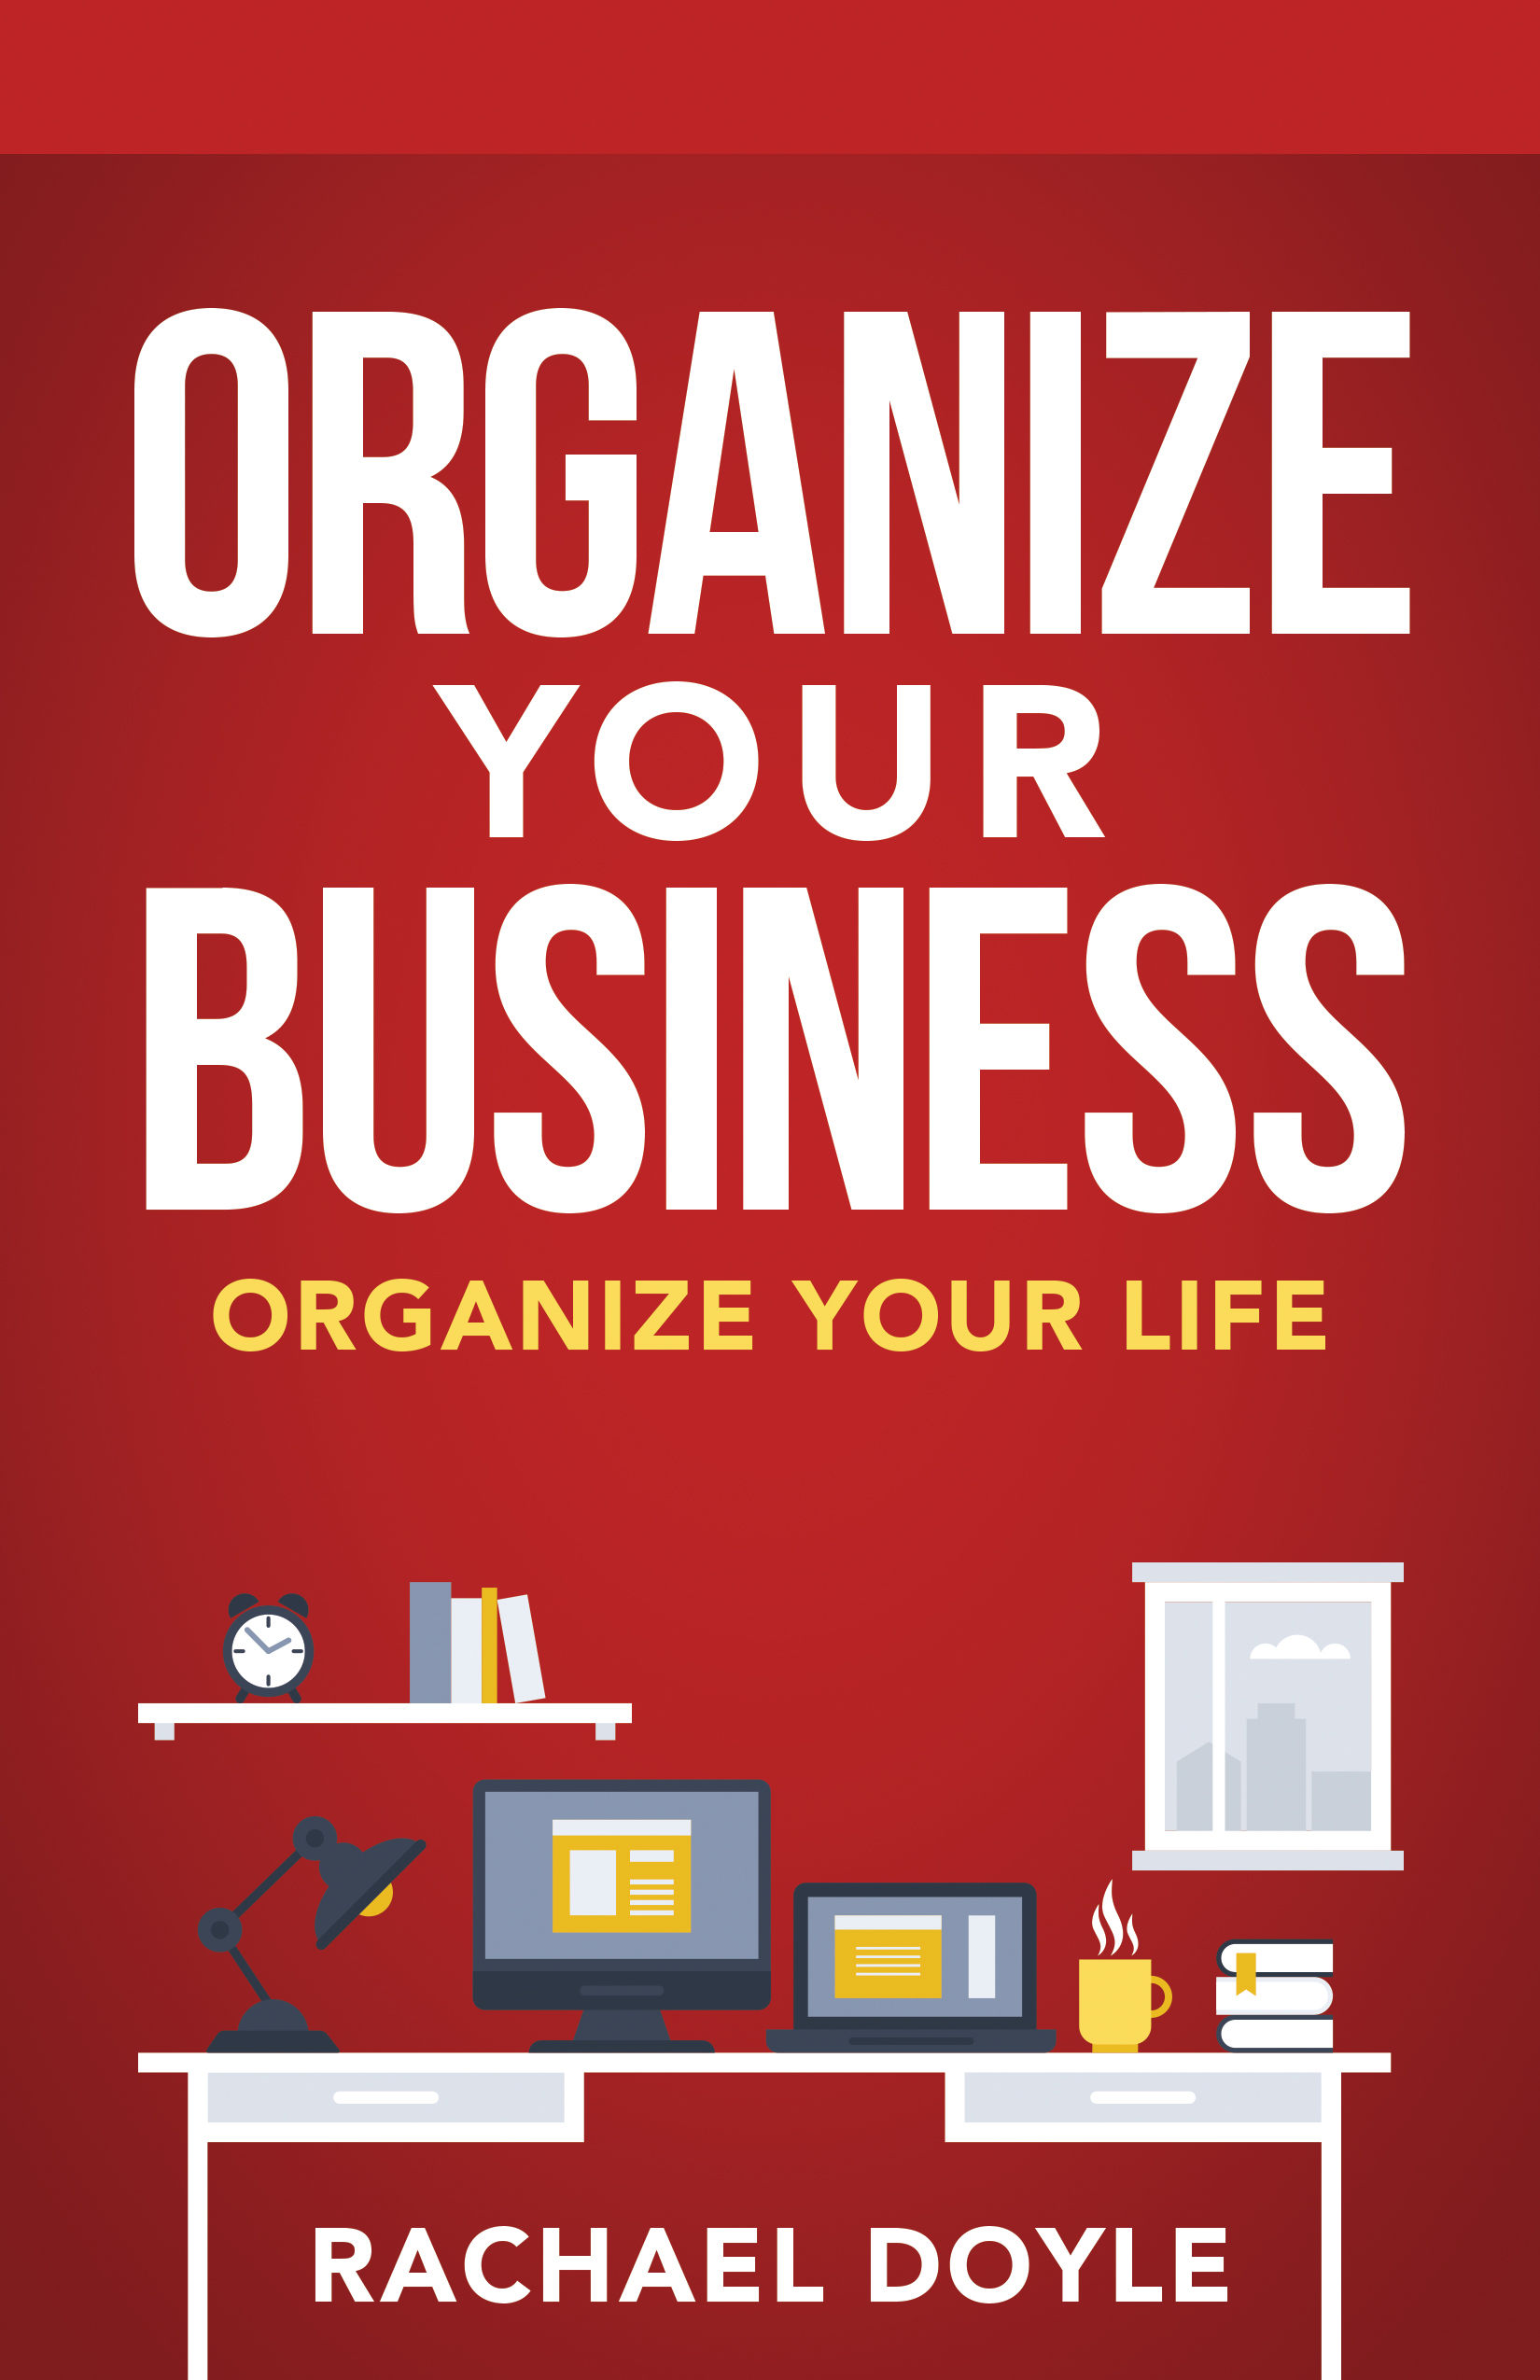 Organize Your Business - By rachael doyle